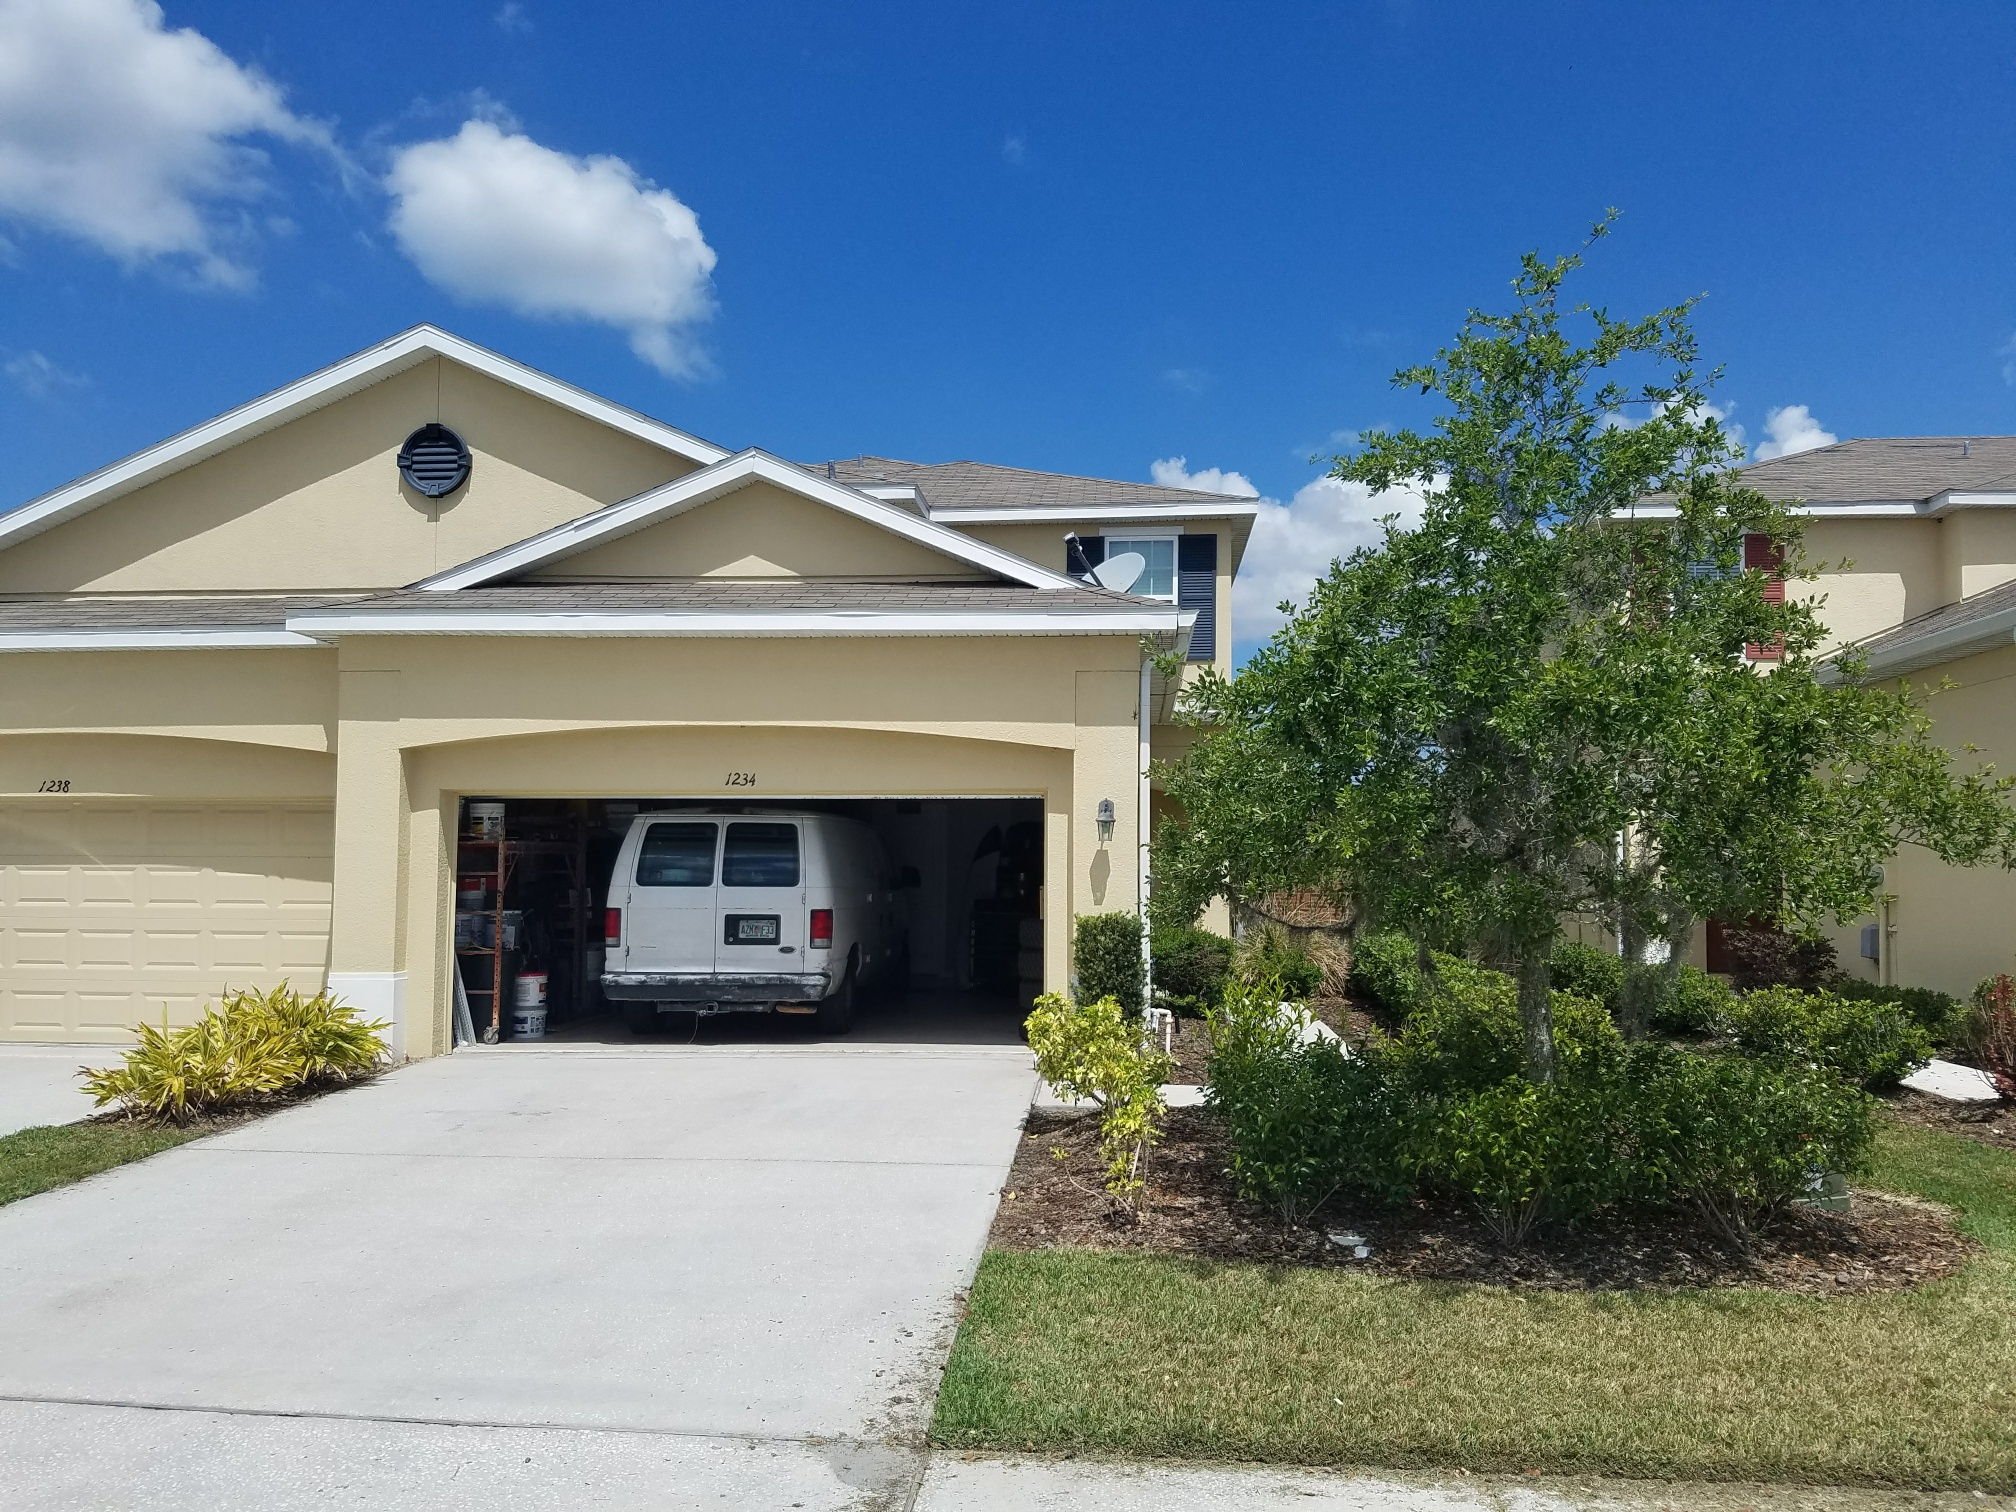 Photo Of 1234 Scarlet Oak Loop, Winter Garden, FL 34787